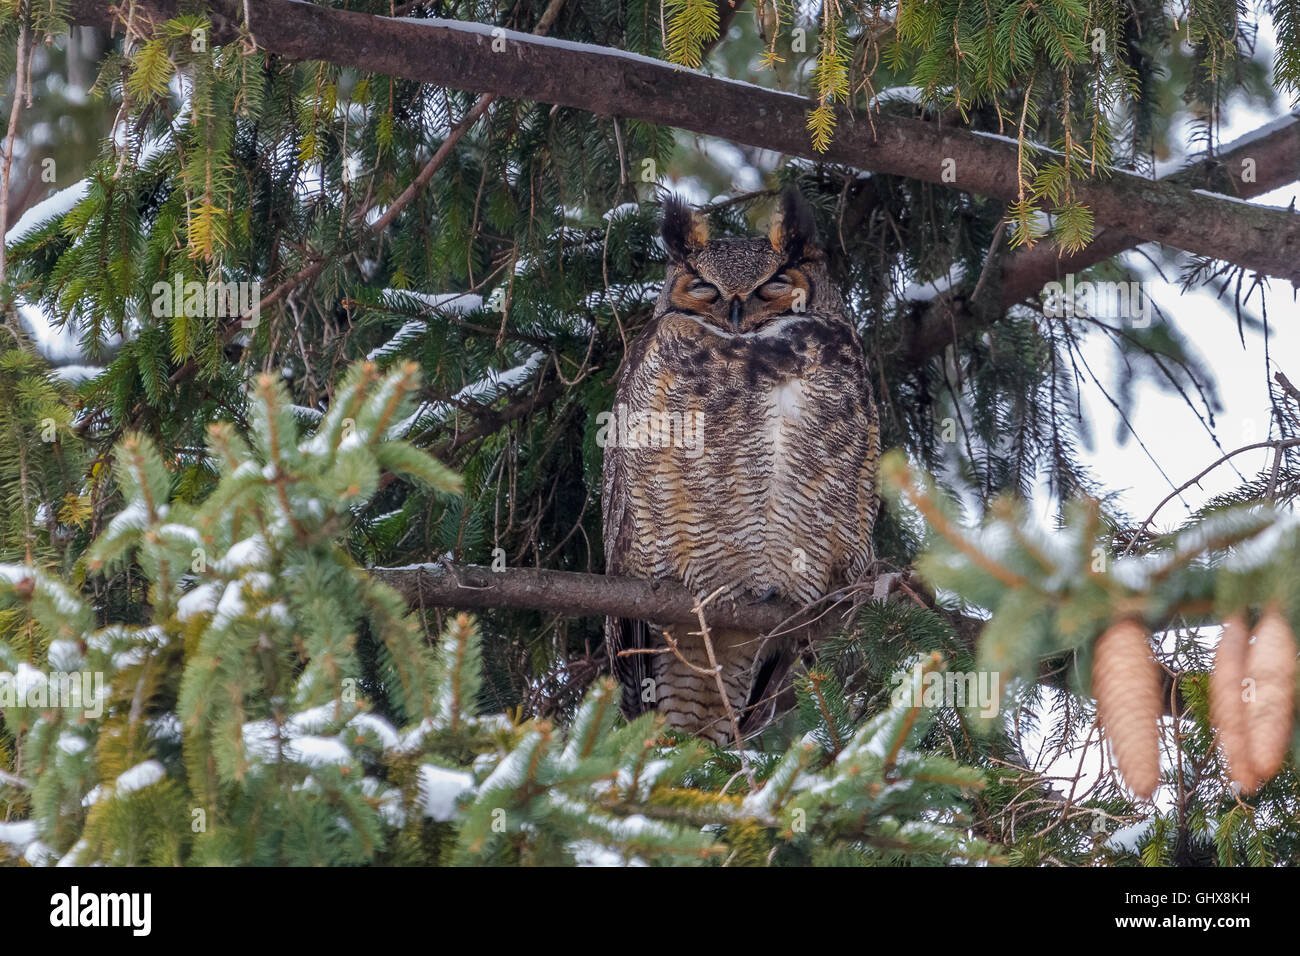 Great Horned Owl Perched in a spruce tree. Stock Photo